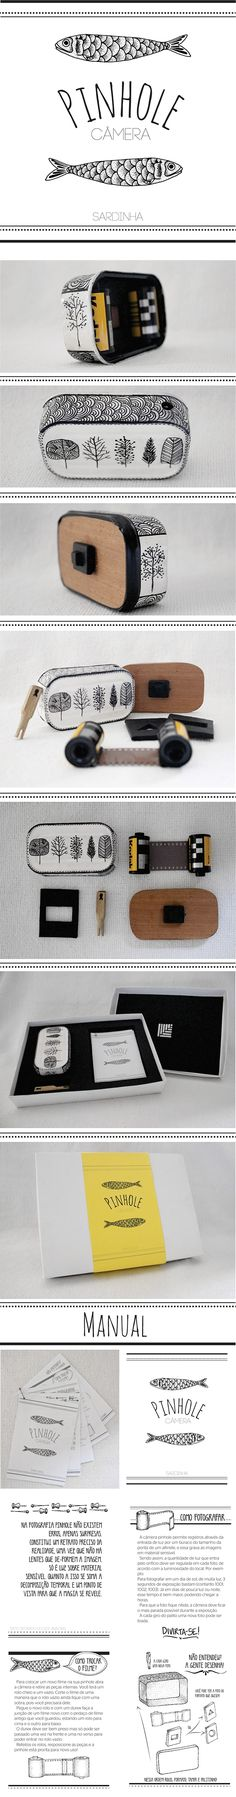 Pinhole camera made from a can of sardines; development of an illustrated manual and packaging.